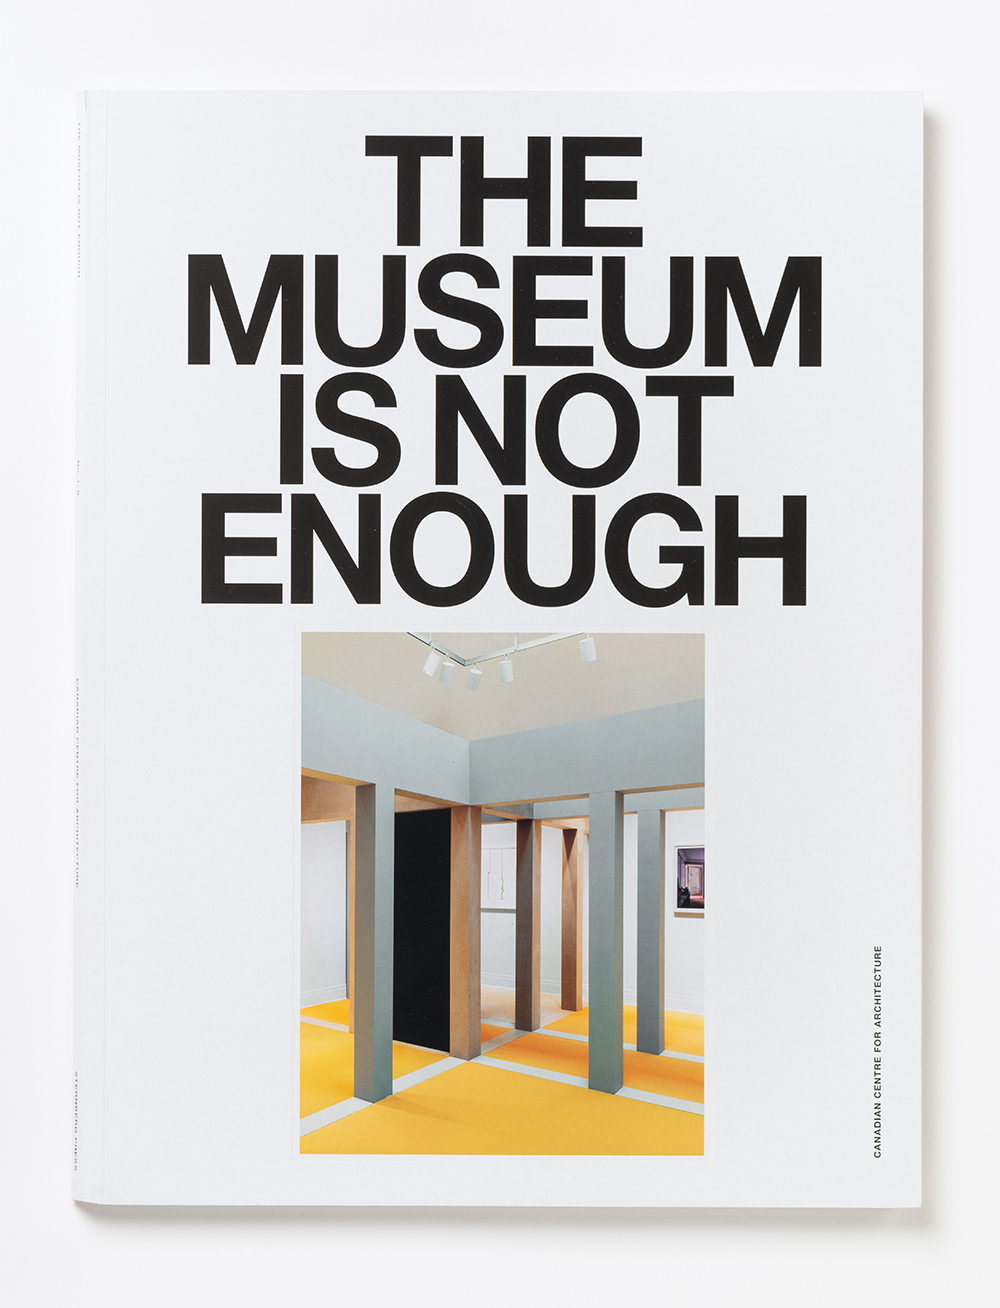 The Museum Is Not Enough (CCA – Sternberg Press, 2019)